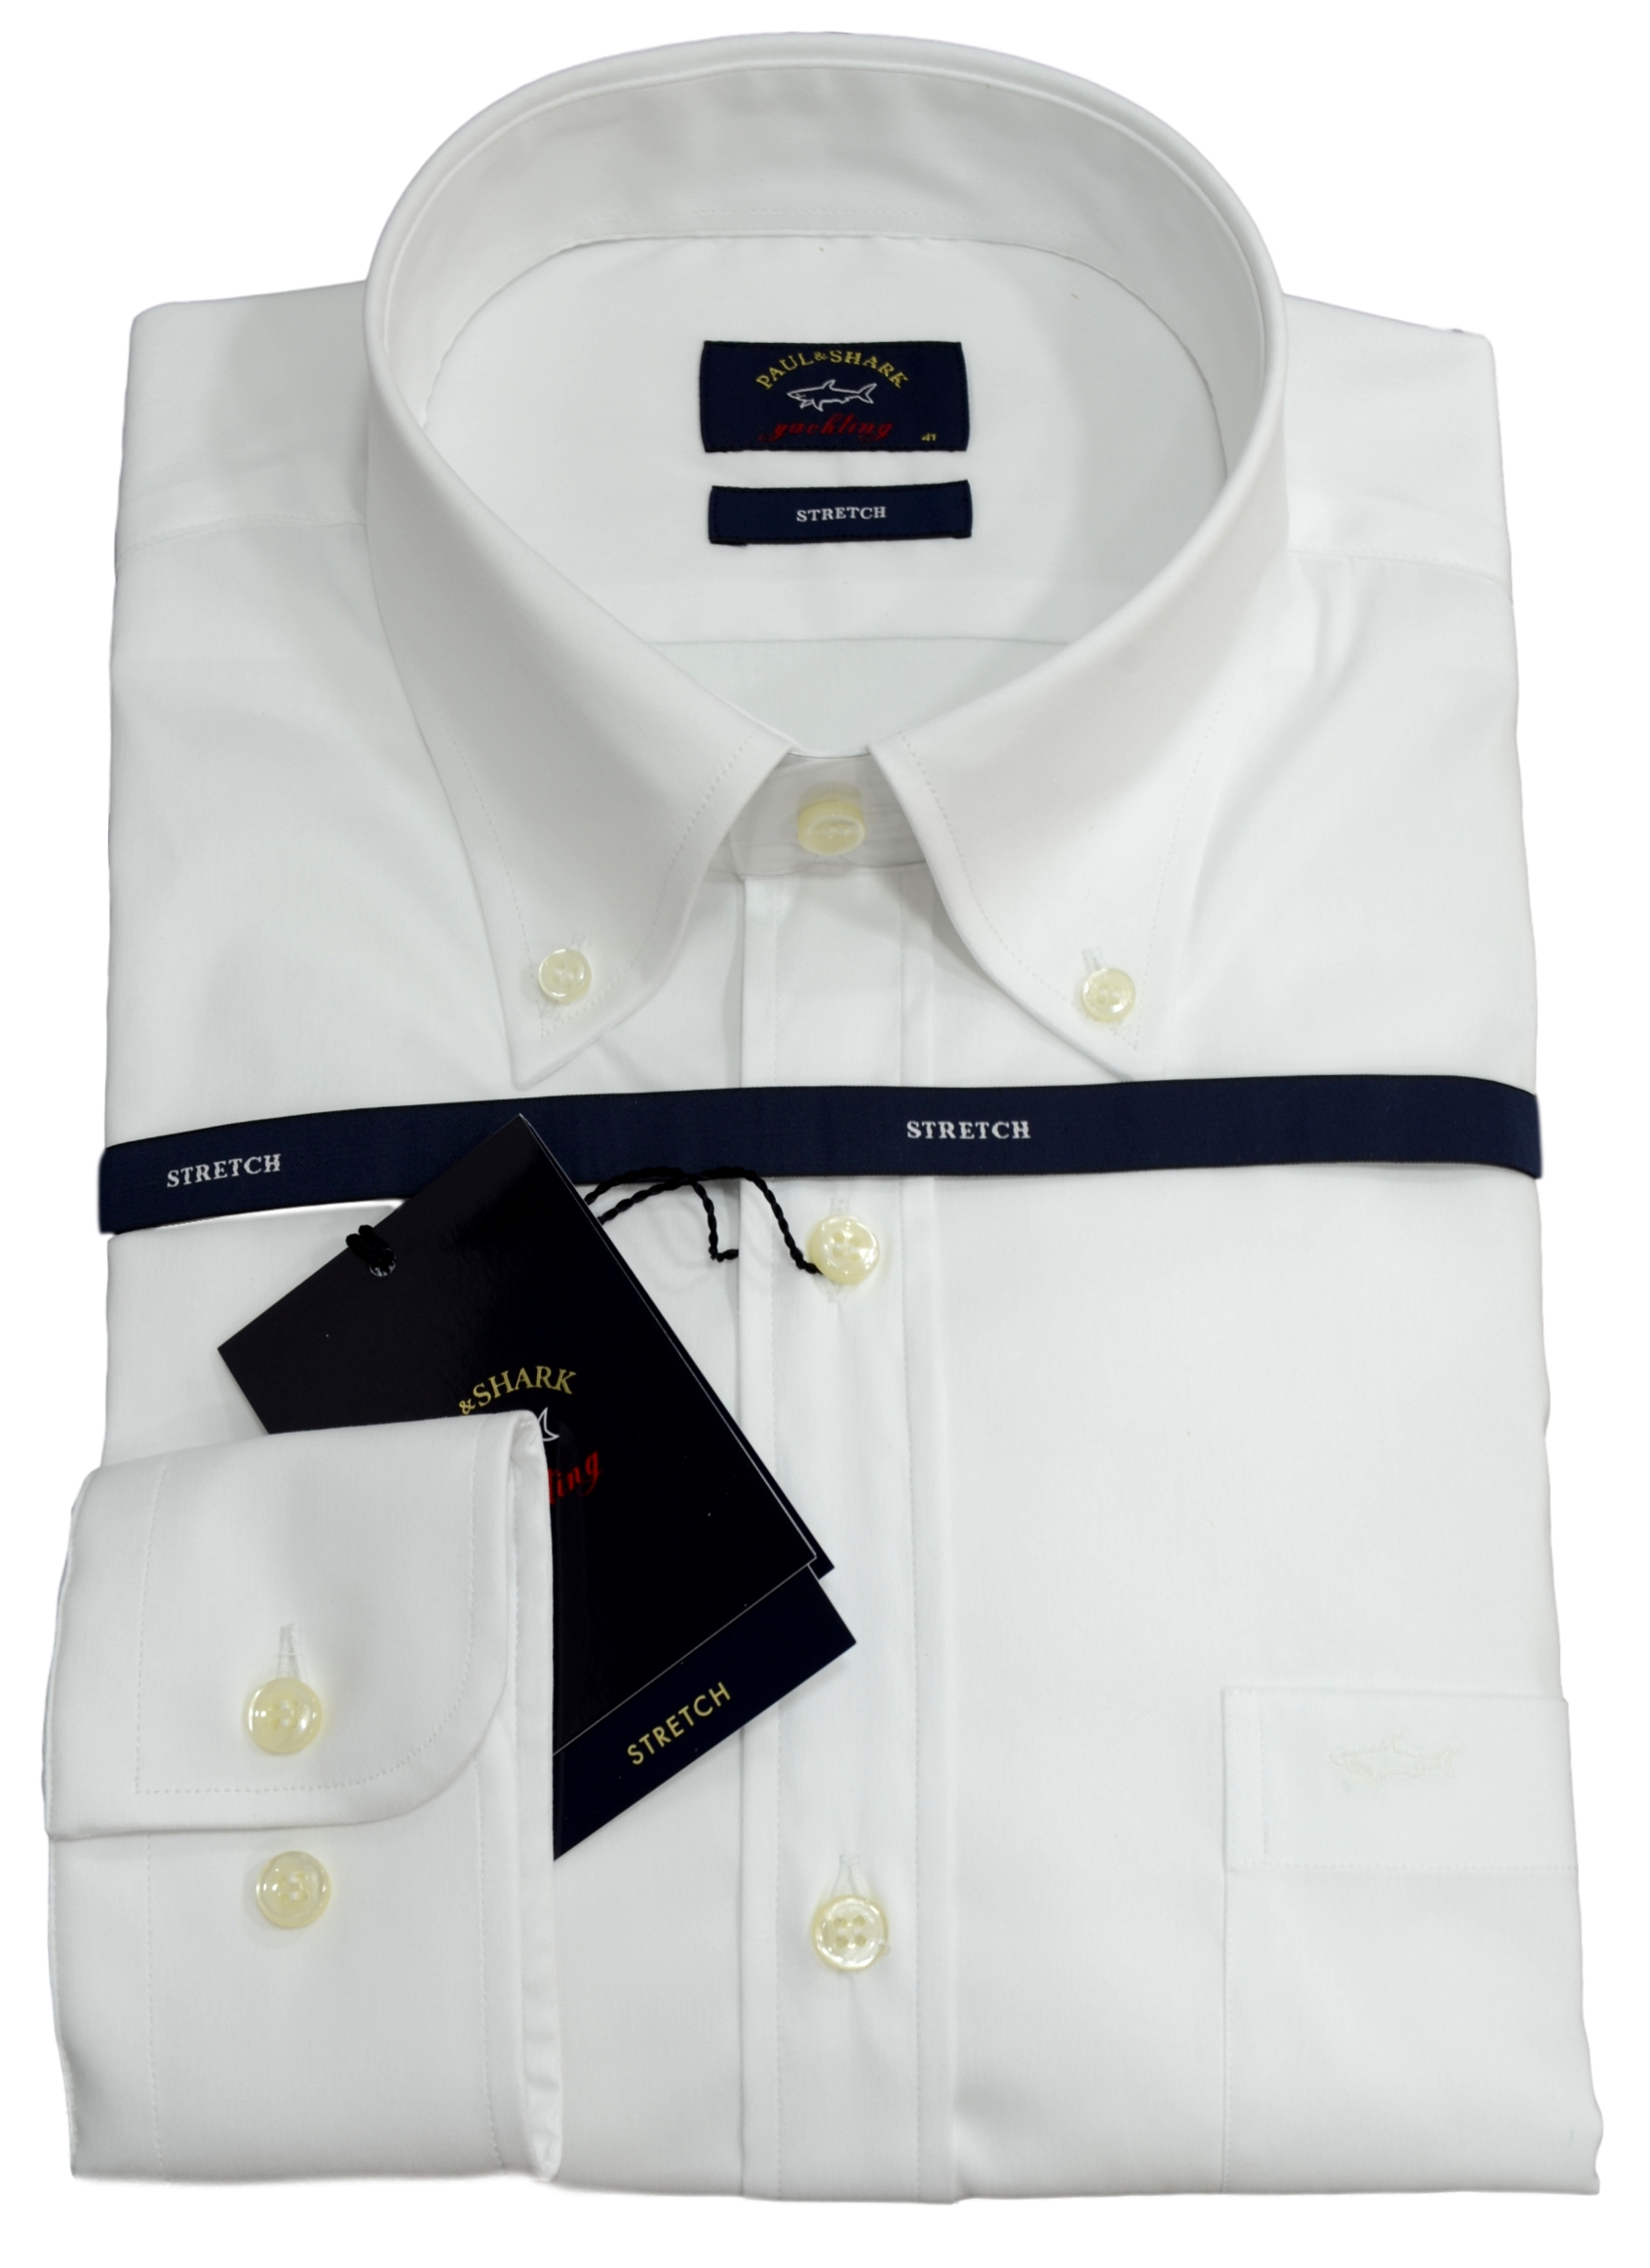 Paul Shark Camicia Uomo Stretch Botton Down P19P3288 Colore Bianco